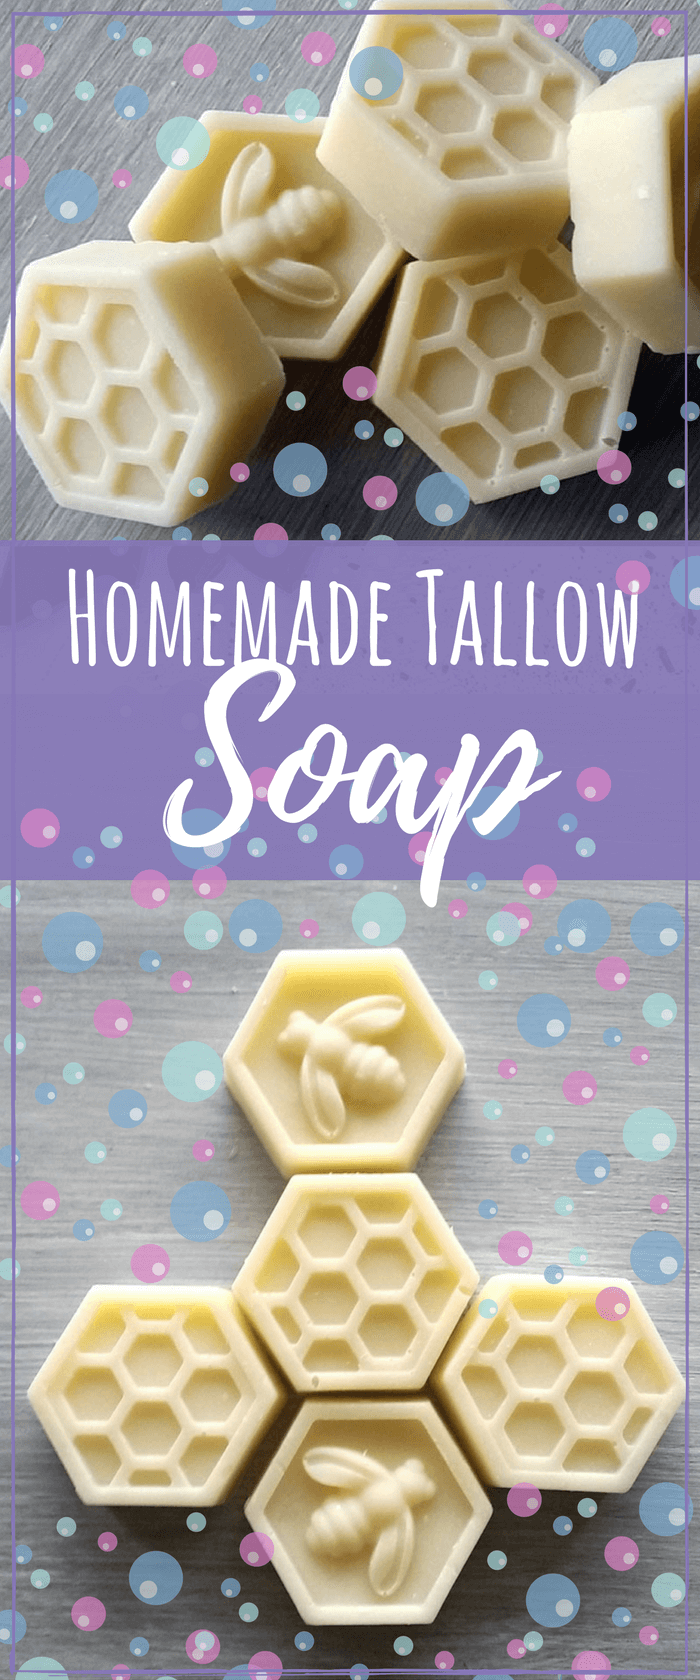 This homemade tallow soap recipe will help moisturize your skin very well since tallow is similar